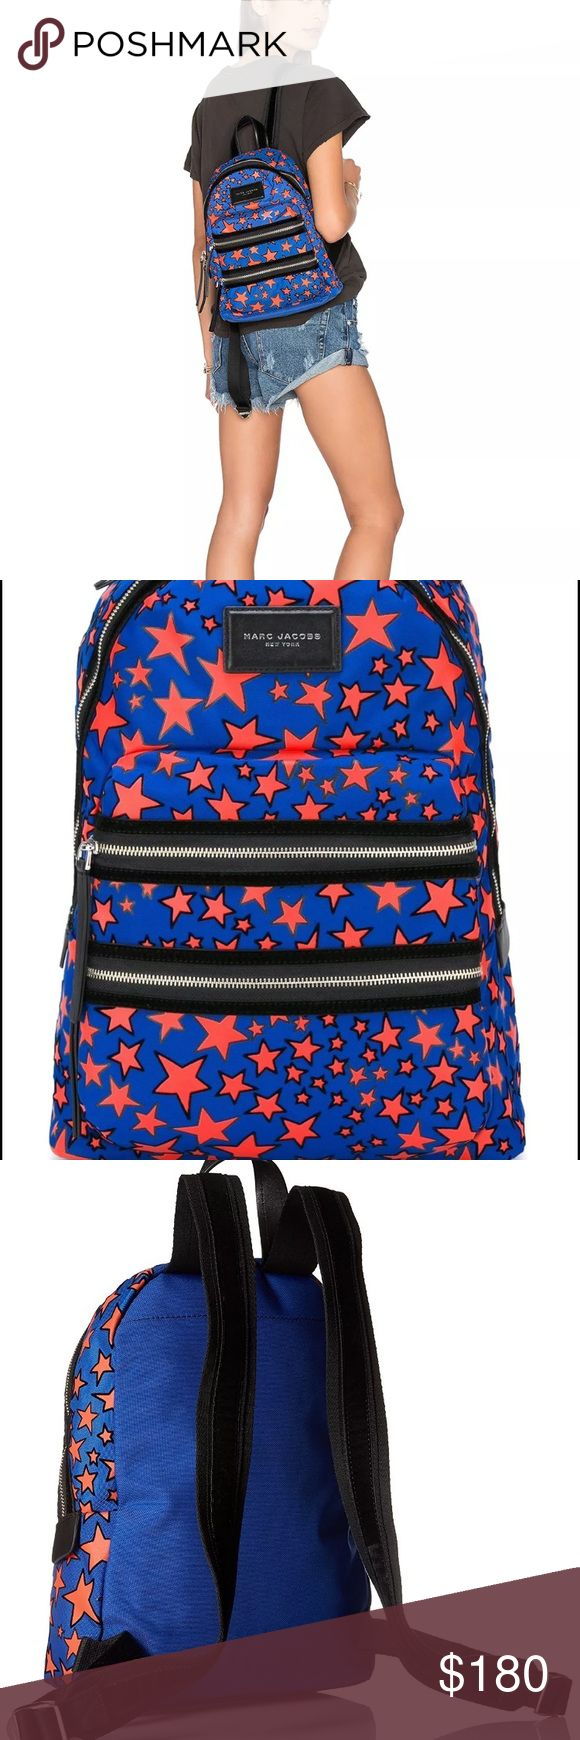 "Marc Jacob's Flocked Stars Biker Backpack Marc Jacob's Flocked Stars Biker Limited Edition Backpack! Take a look at our Marc Jacobs Flocked Stars Mini Biker Backpack today, and grab a handbag that'll work best for your day to day needs! Zipper closure. Measures at 10""W x 13.5""H x 3.5""D Polyester material with leather trim Top leather handle, two adjustable shoulder straps and a removable cross body strap with clip hardware Silver Tone Hardware Two-way top-zip closure Marc Jacobs Bags…"